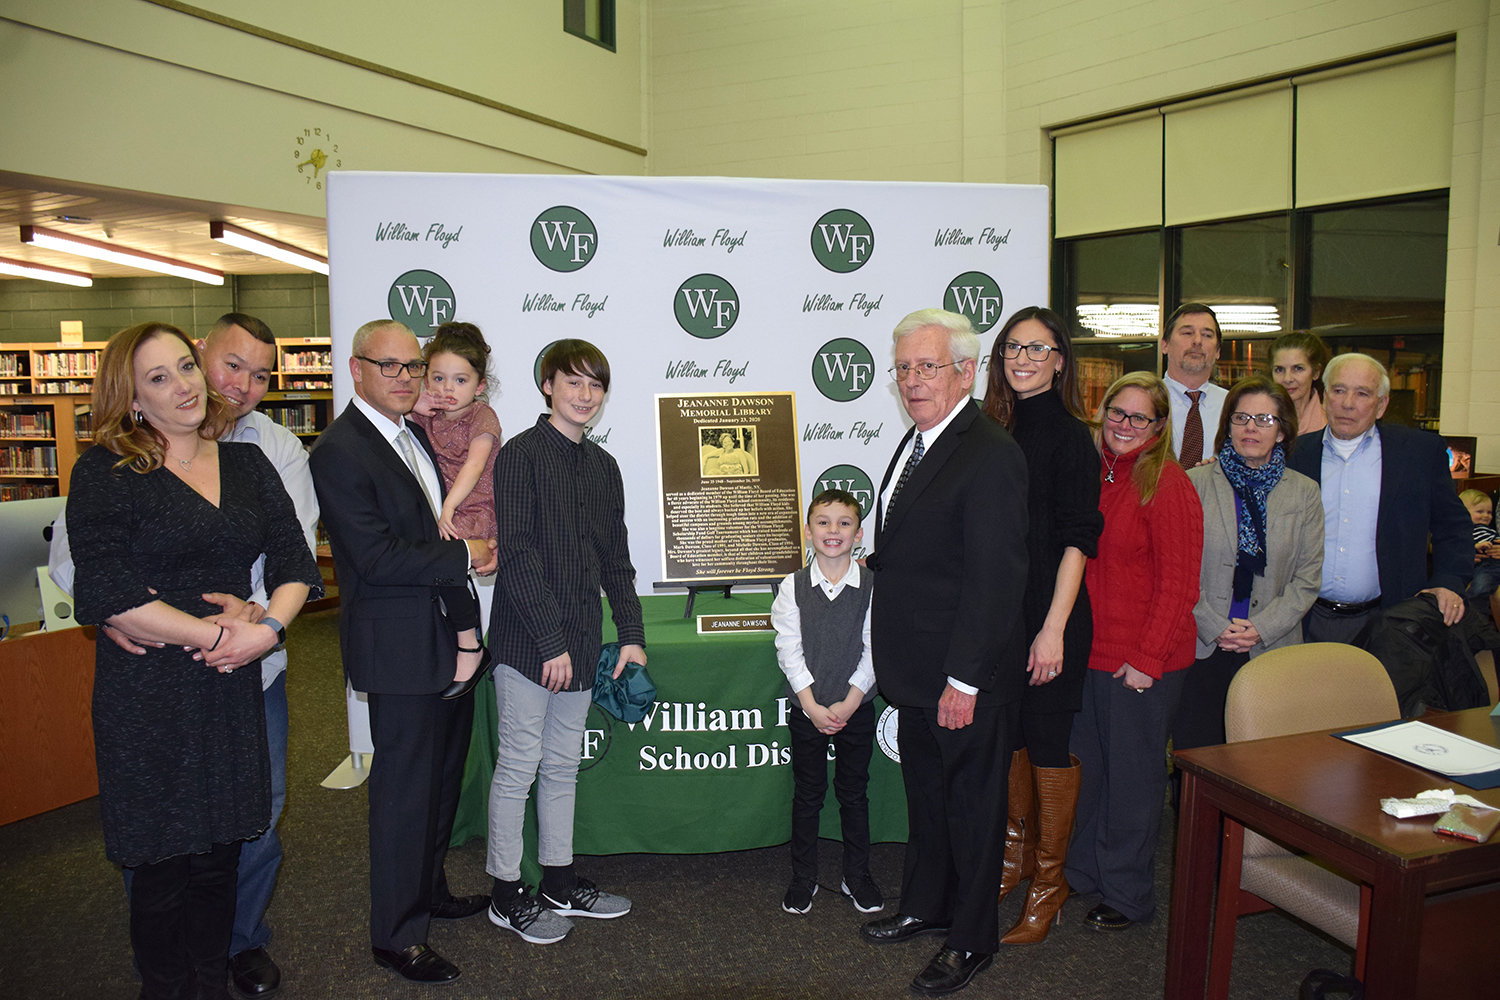 The Dawson family celebrates the renaming and dedication of the William Floyd High School library to the Jeananne Dawson Memorial Library.